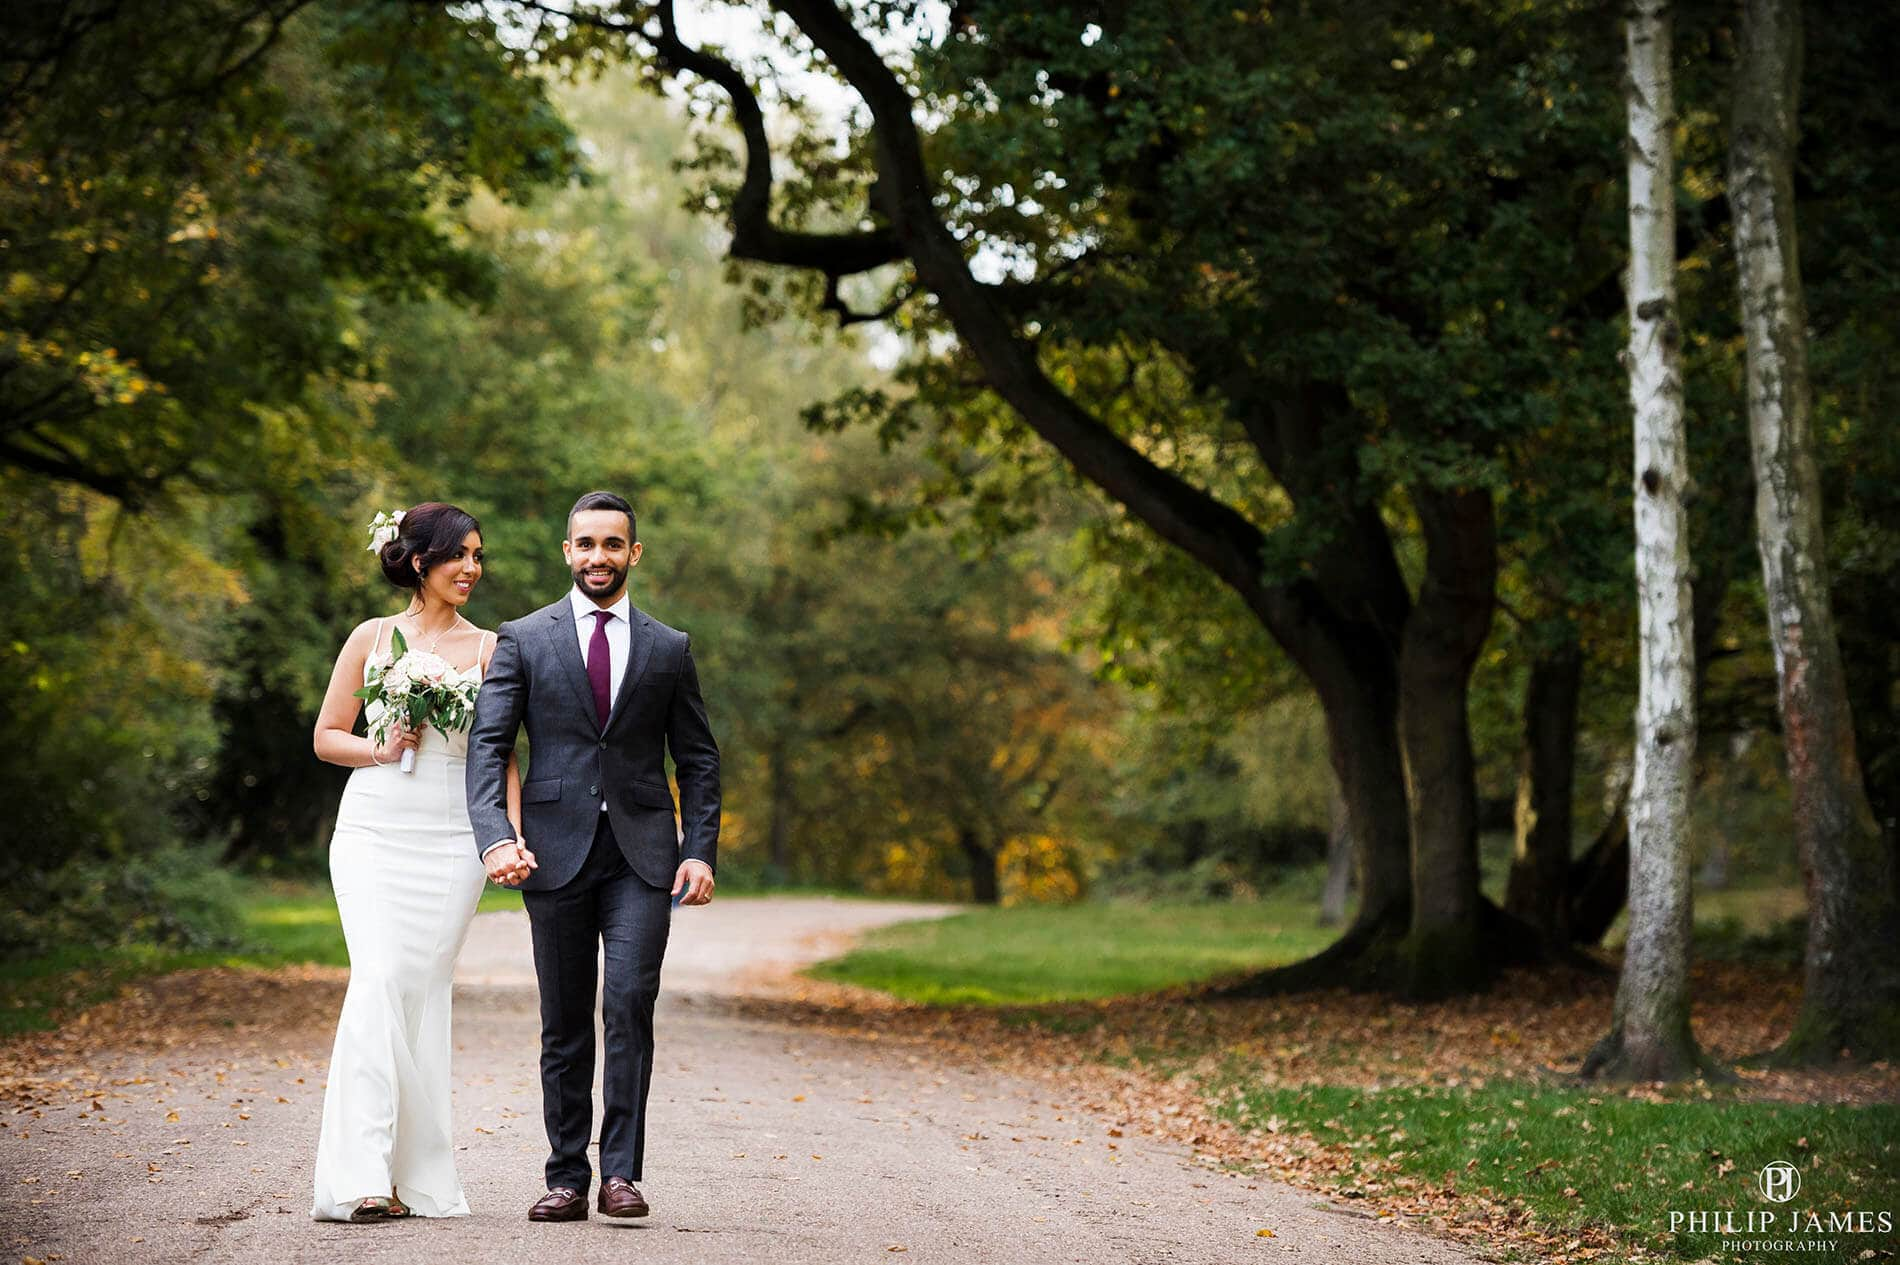 Sutton Park wedding photographer | Philip James Photography